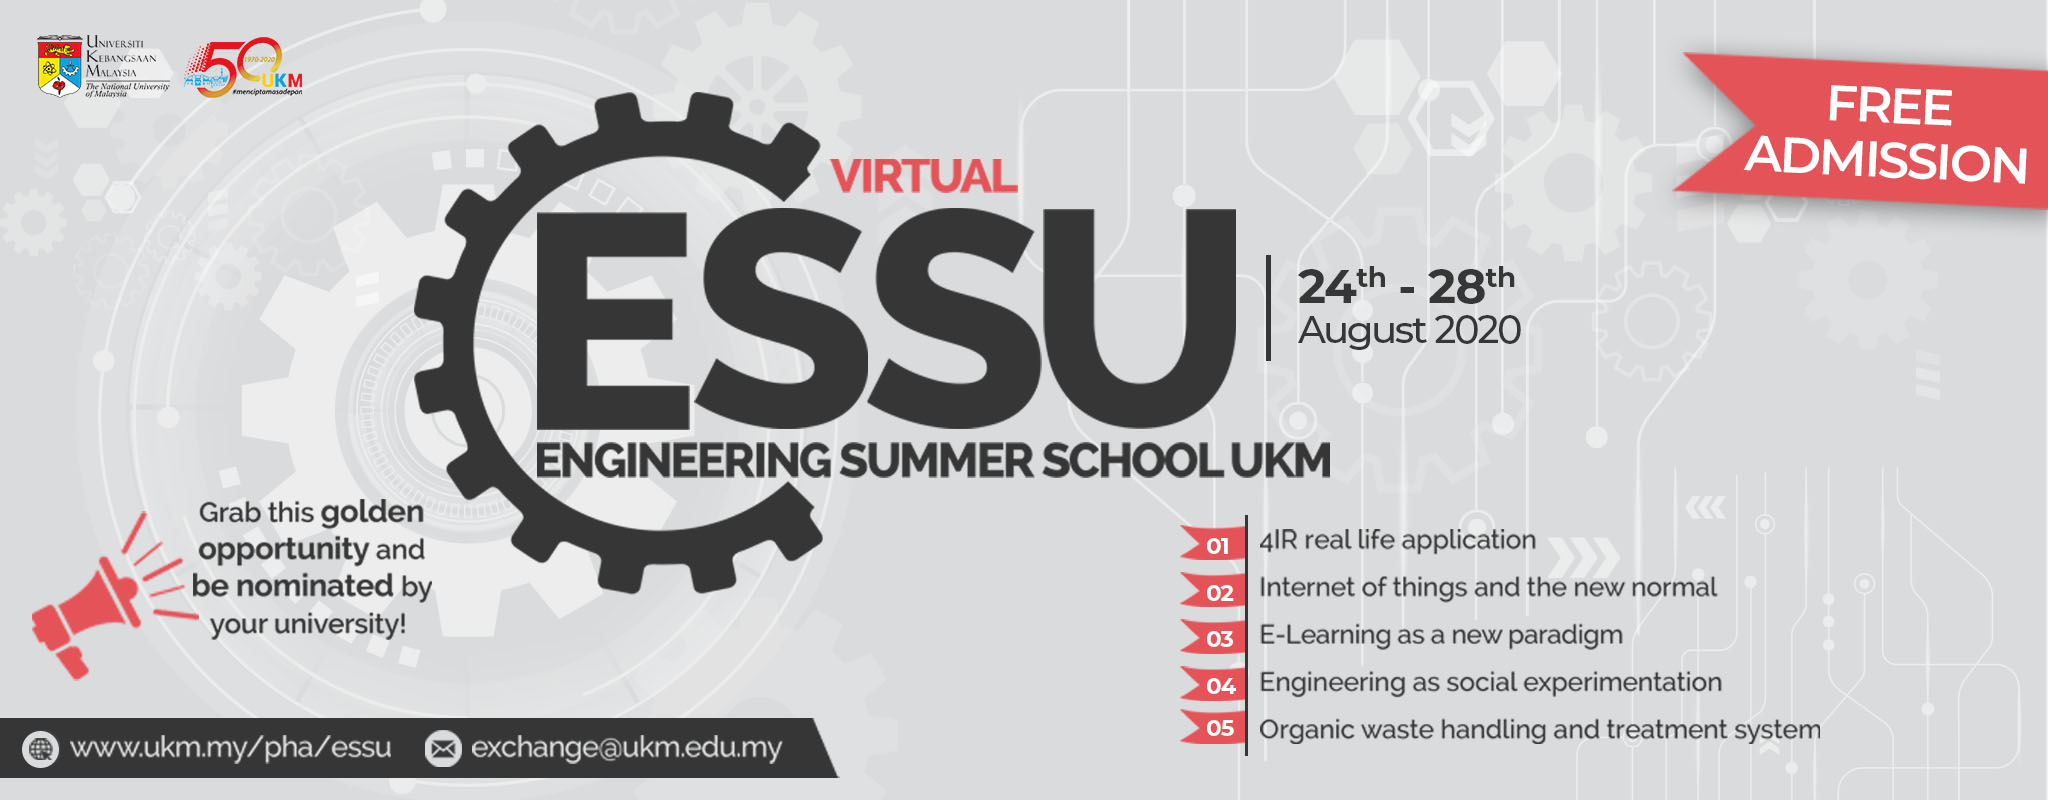 Engineering Summer School UKM 2020